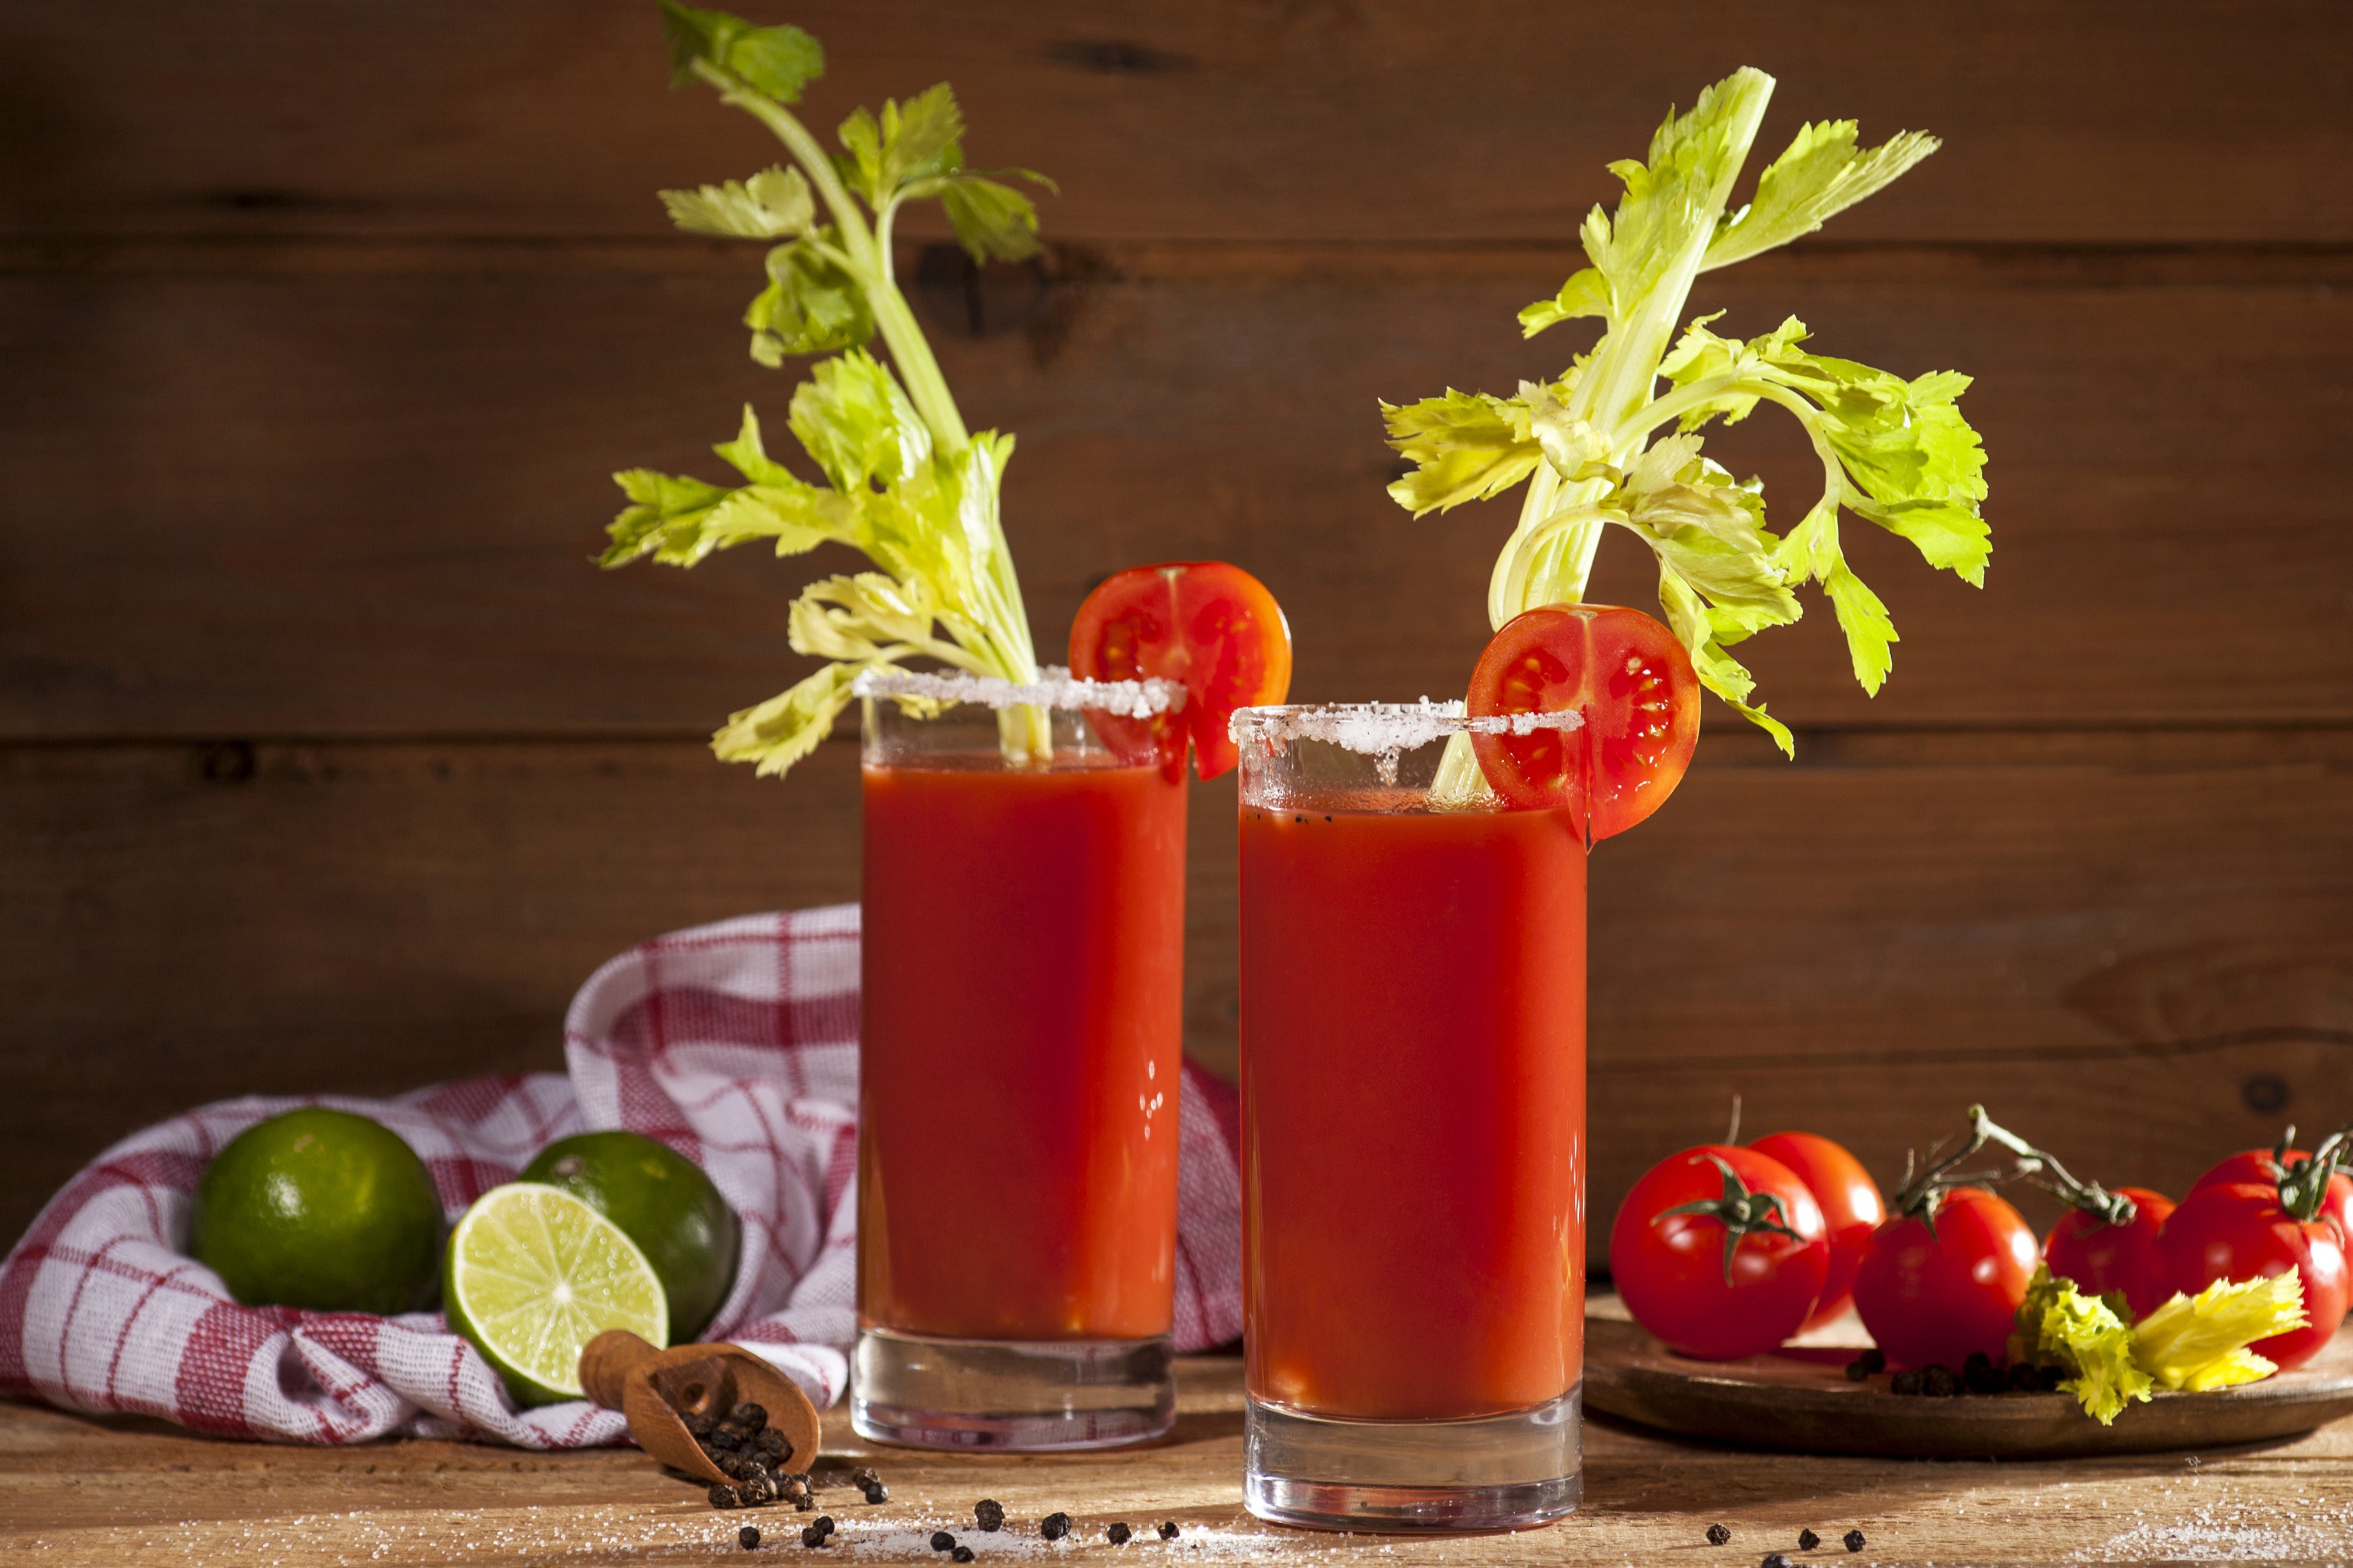 Two tall glasses filled with Bloody Mary mix and garnished with celery sticks and tomatoes.